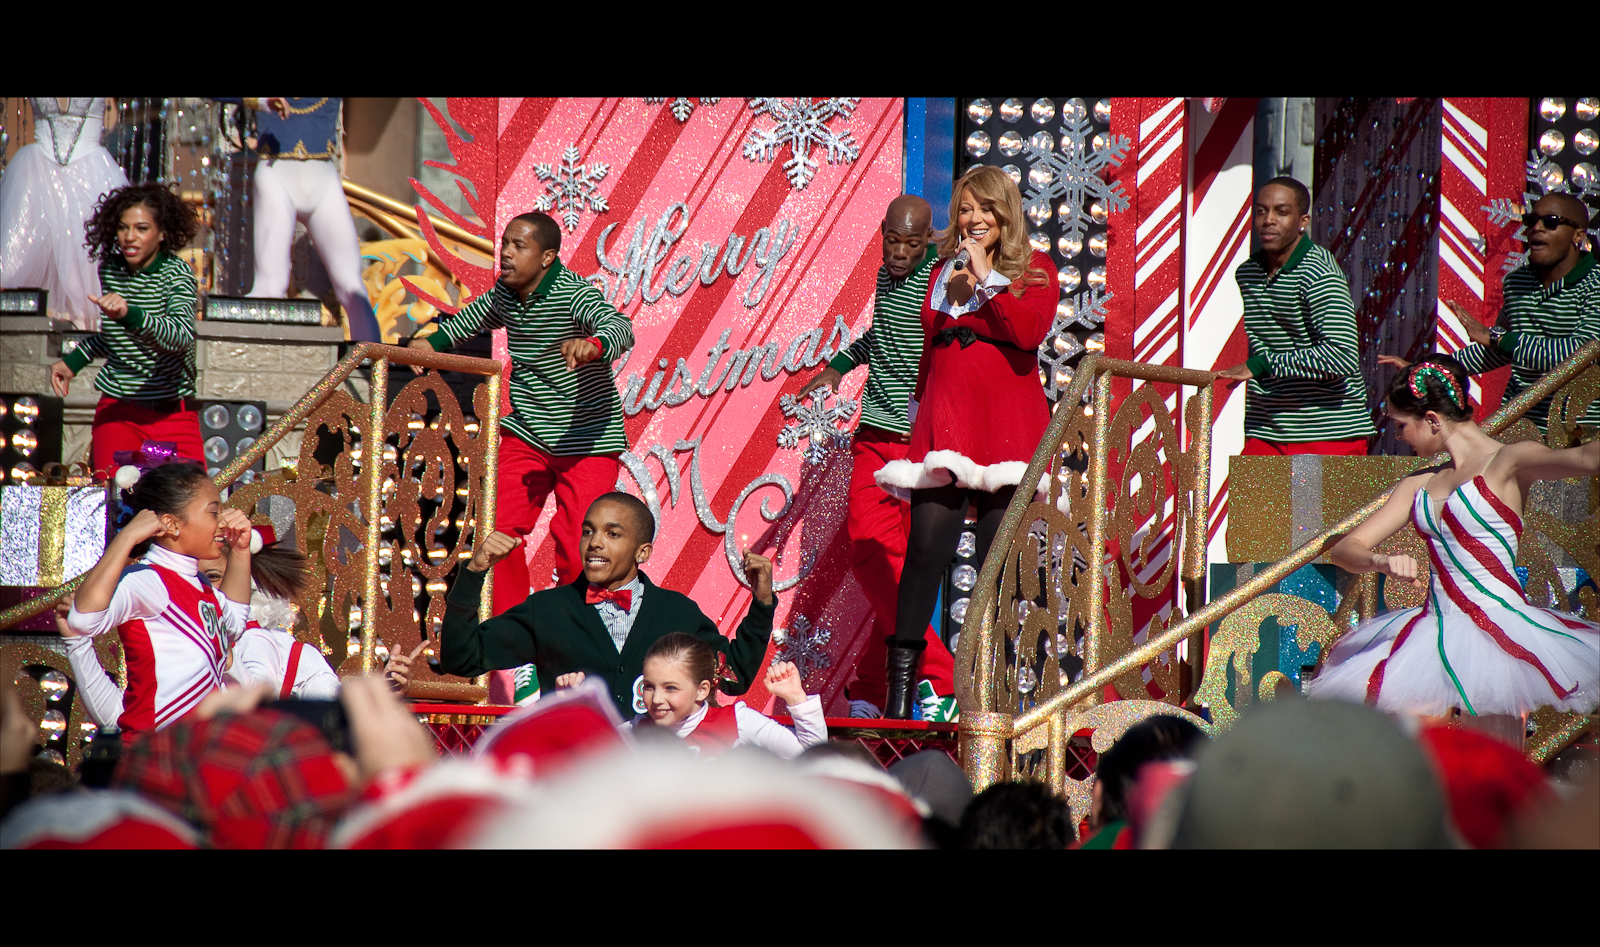 Mariah Carey singing  Oh Santa!  at Disney's Christmas Parade Taping.